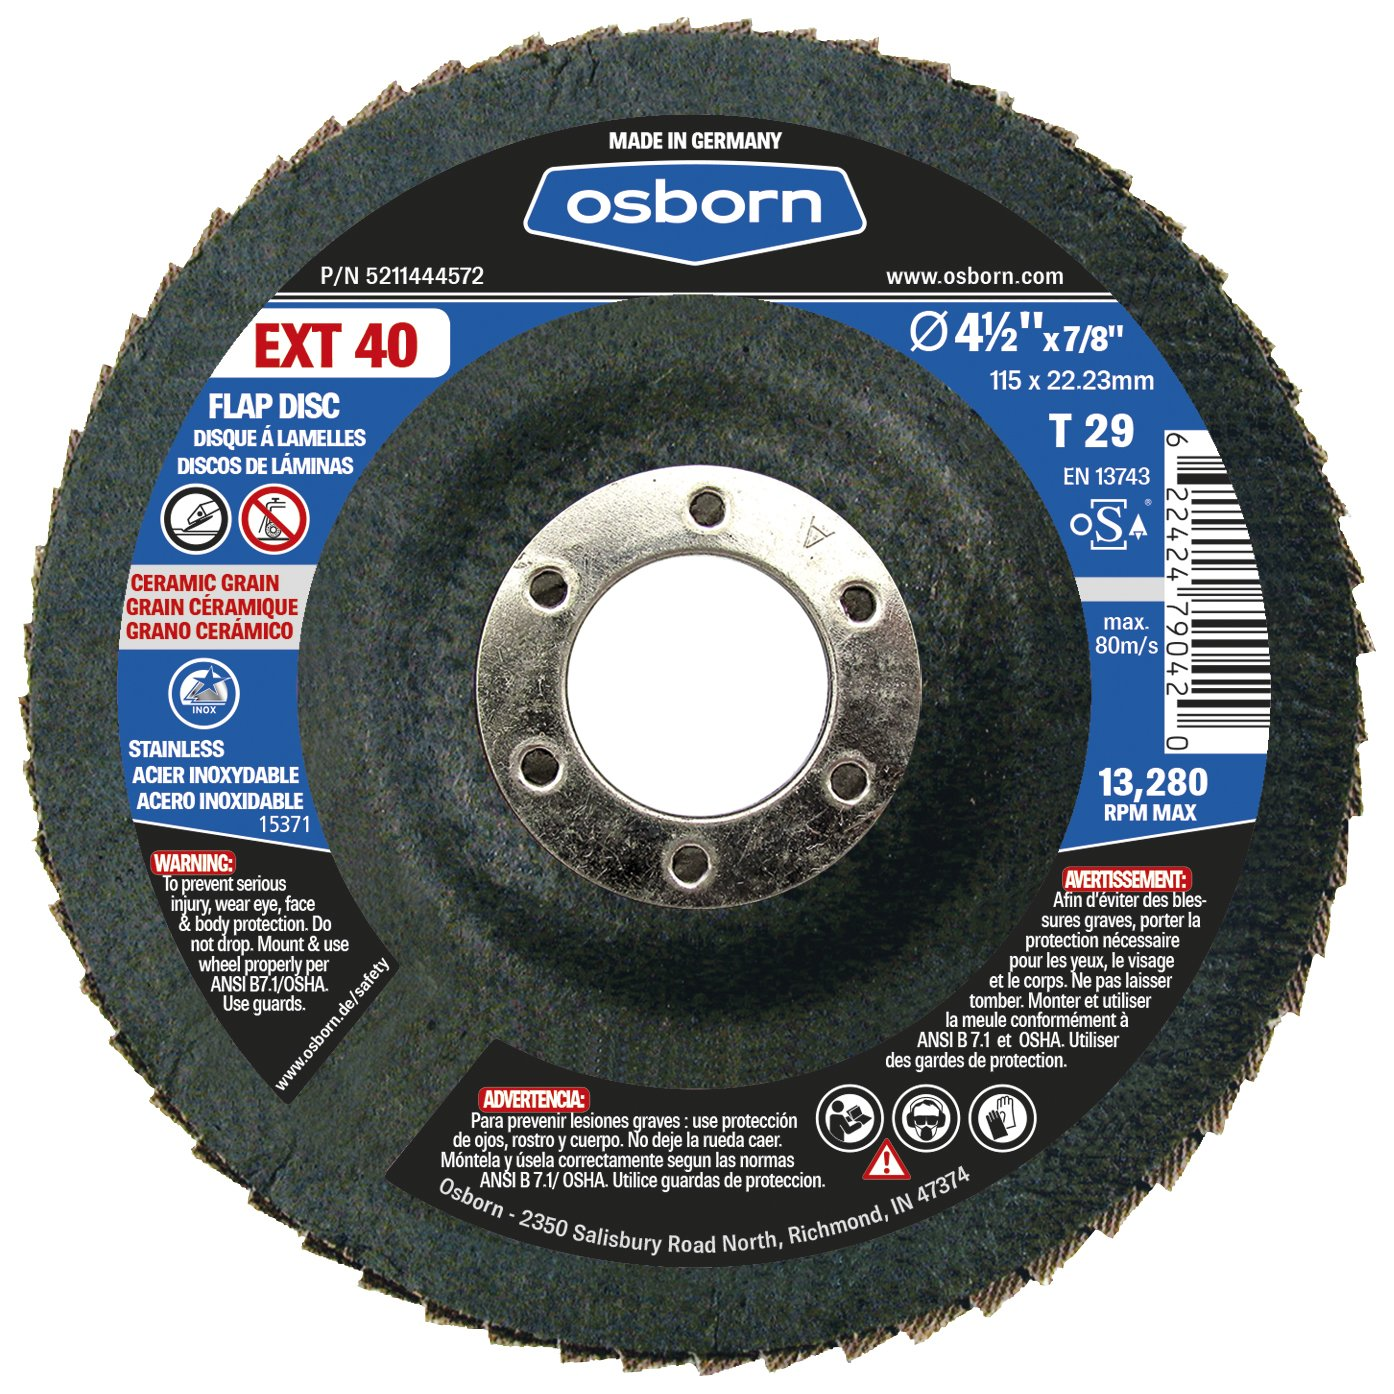 4-1//2 x 7//8 4.5 Type Osborn 5211444572 29 Ceramic 40 Grit Flap Disc T29 4-1//2 x 7//8 Pack of 10 EXT 40 Pack of 10 4.5 Type